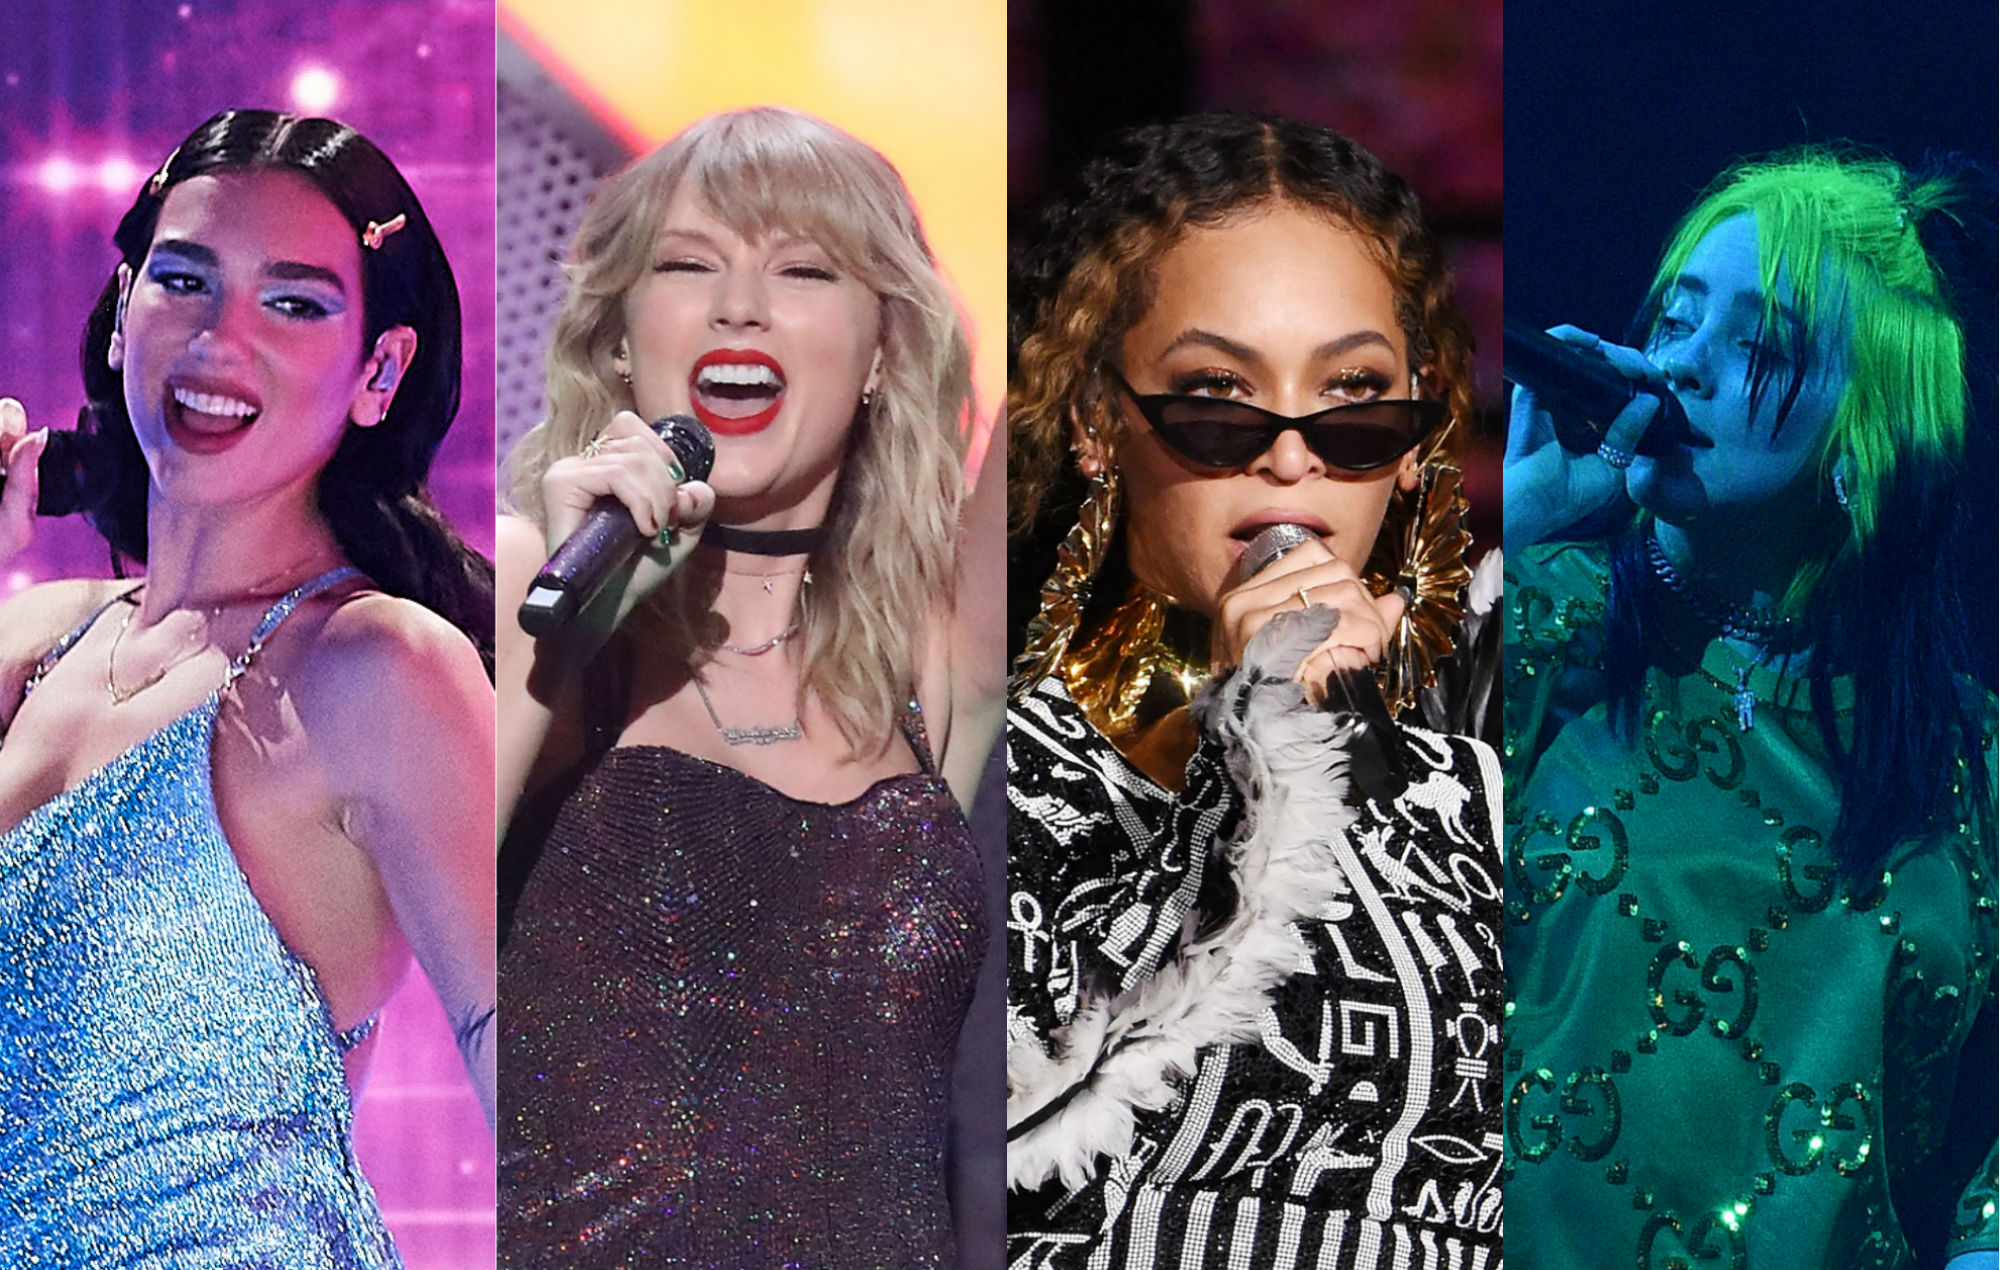 06yuii8e c10m https www nme com news music grammys nominations 2021 dua lipa taylor swift beyonce and billie eilish lead the way 2824245